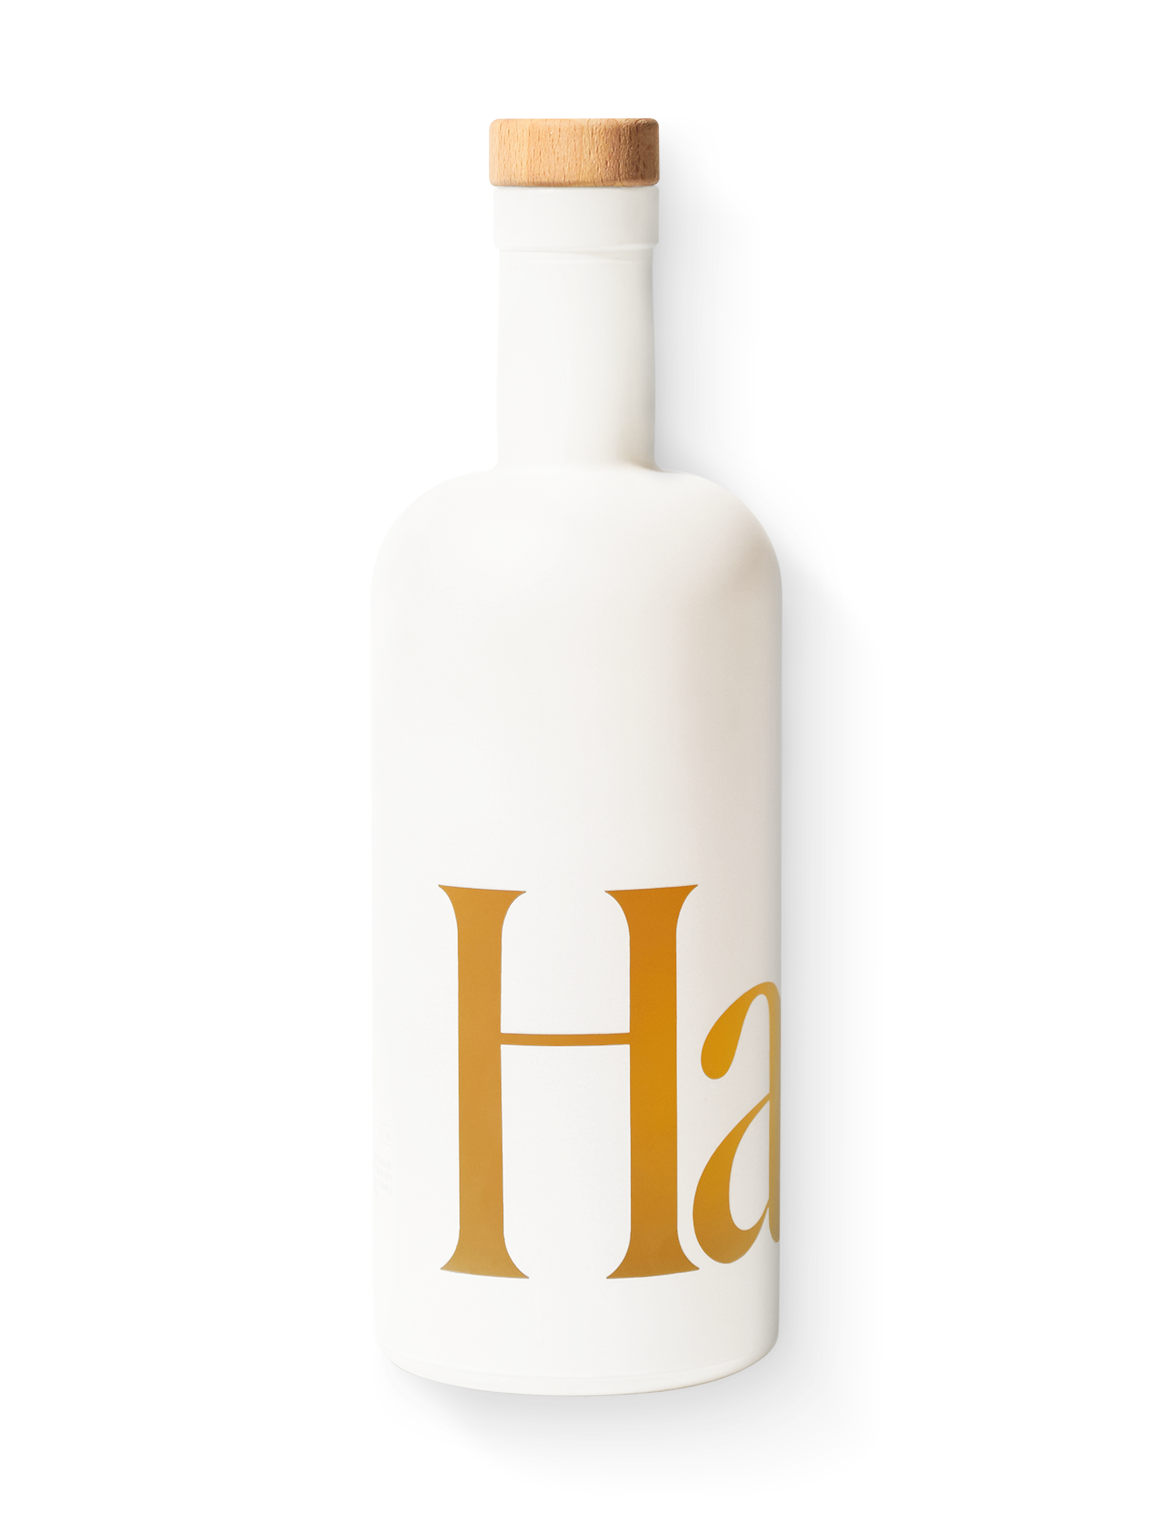 Haus x Marlow Collective bottle